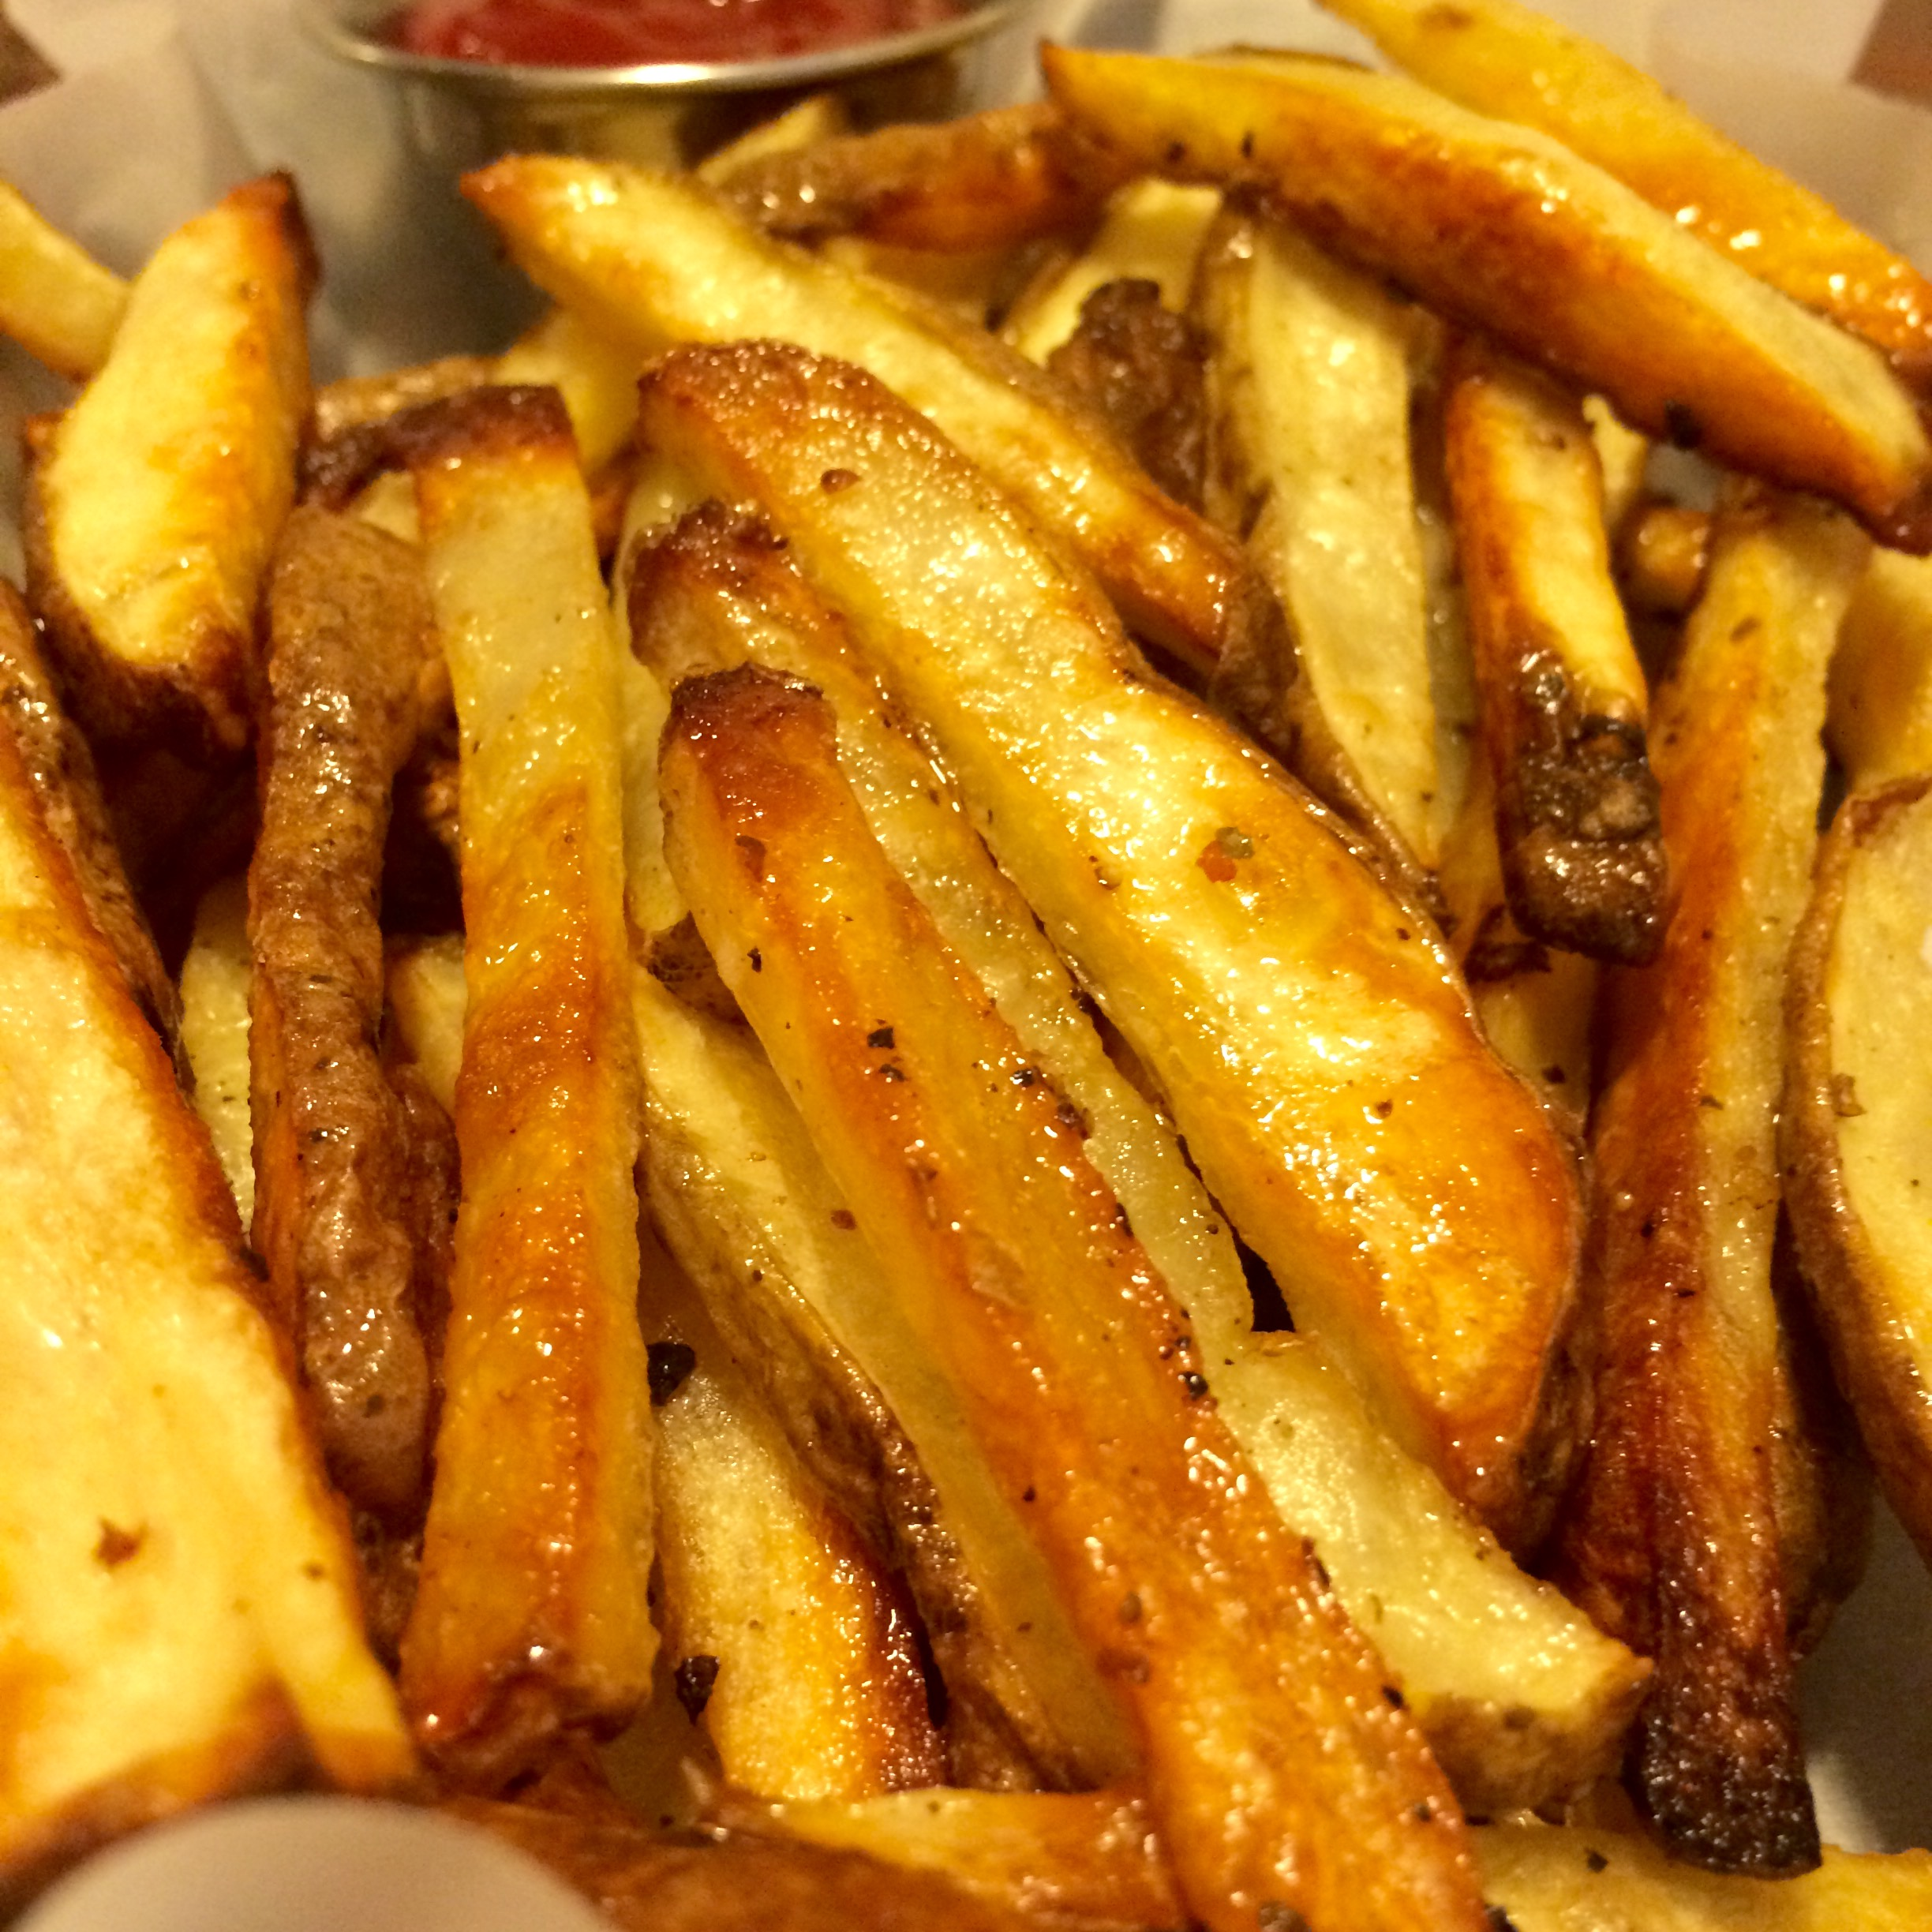 Recipe for crispy oven baked french fries